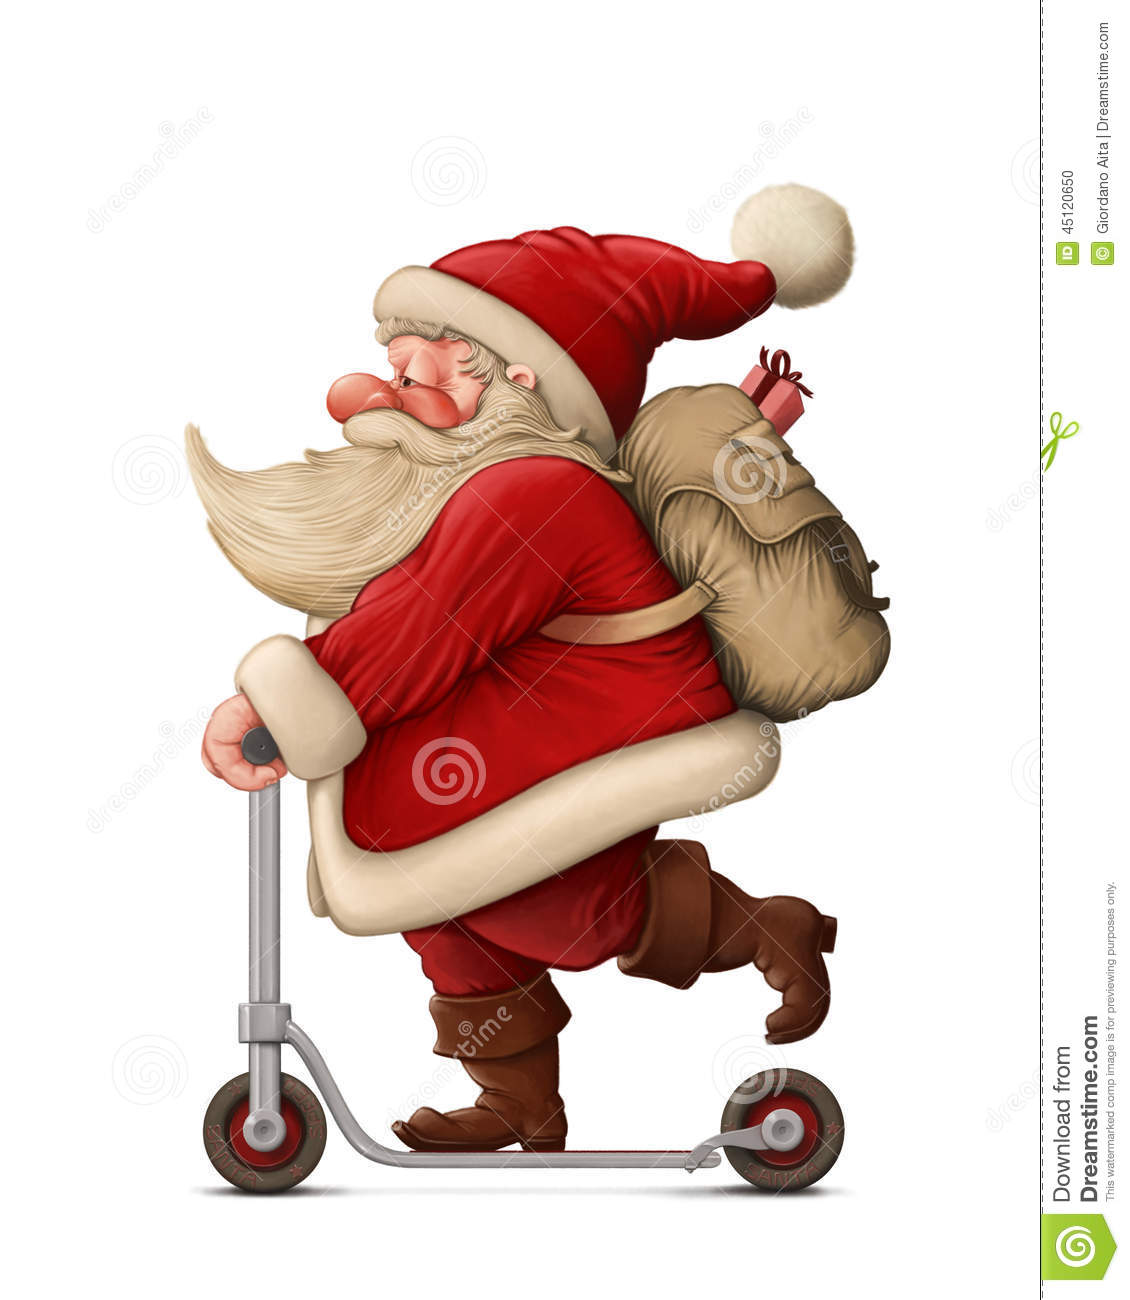 Santa Claus And The Push Scooter Stock Illustration - Image: 45120650